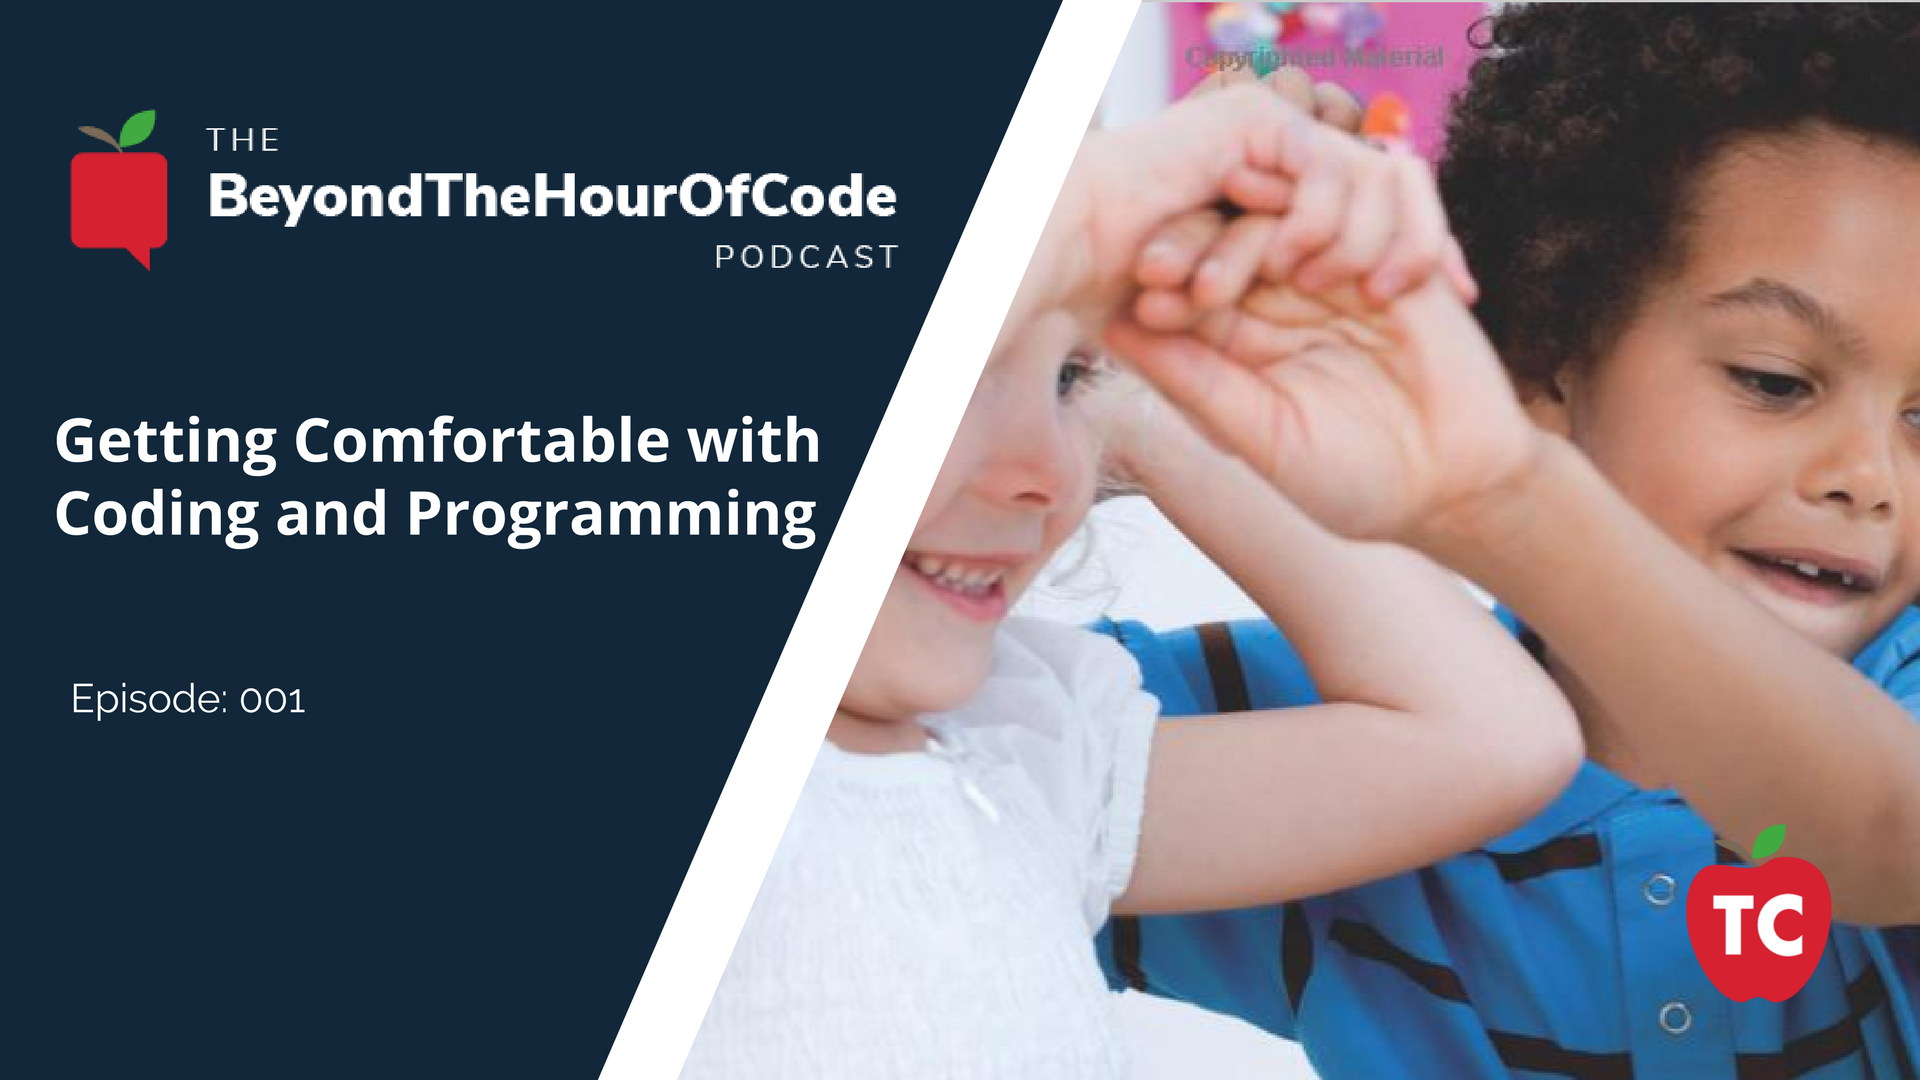 Beyond the Hour of Code Podcast Episode 1